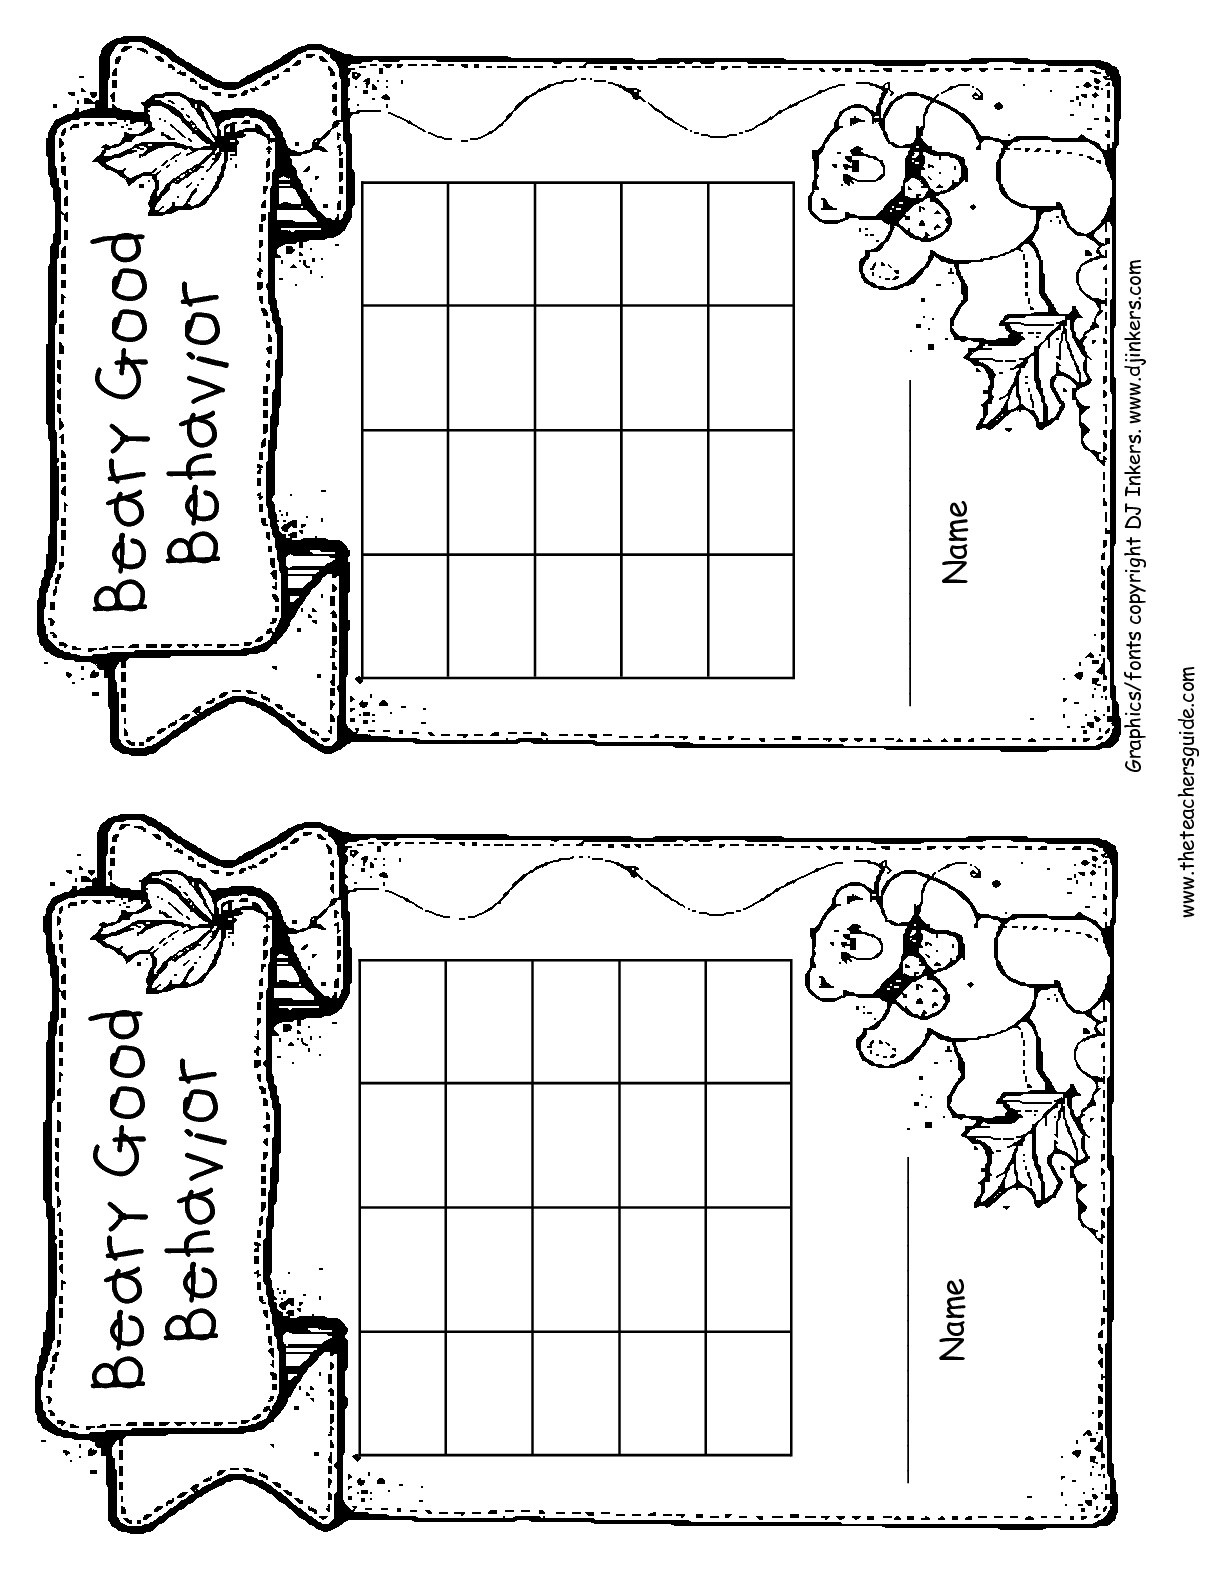 Free Printable Reward And Incentive Charts - Free Printable Incentive Charts For Students